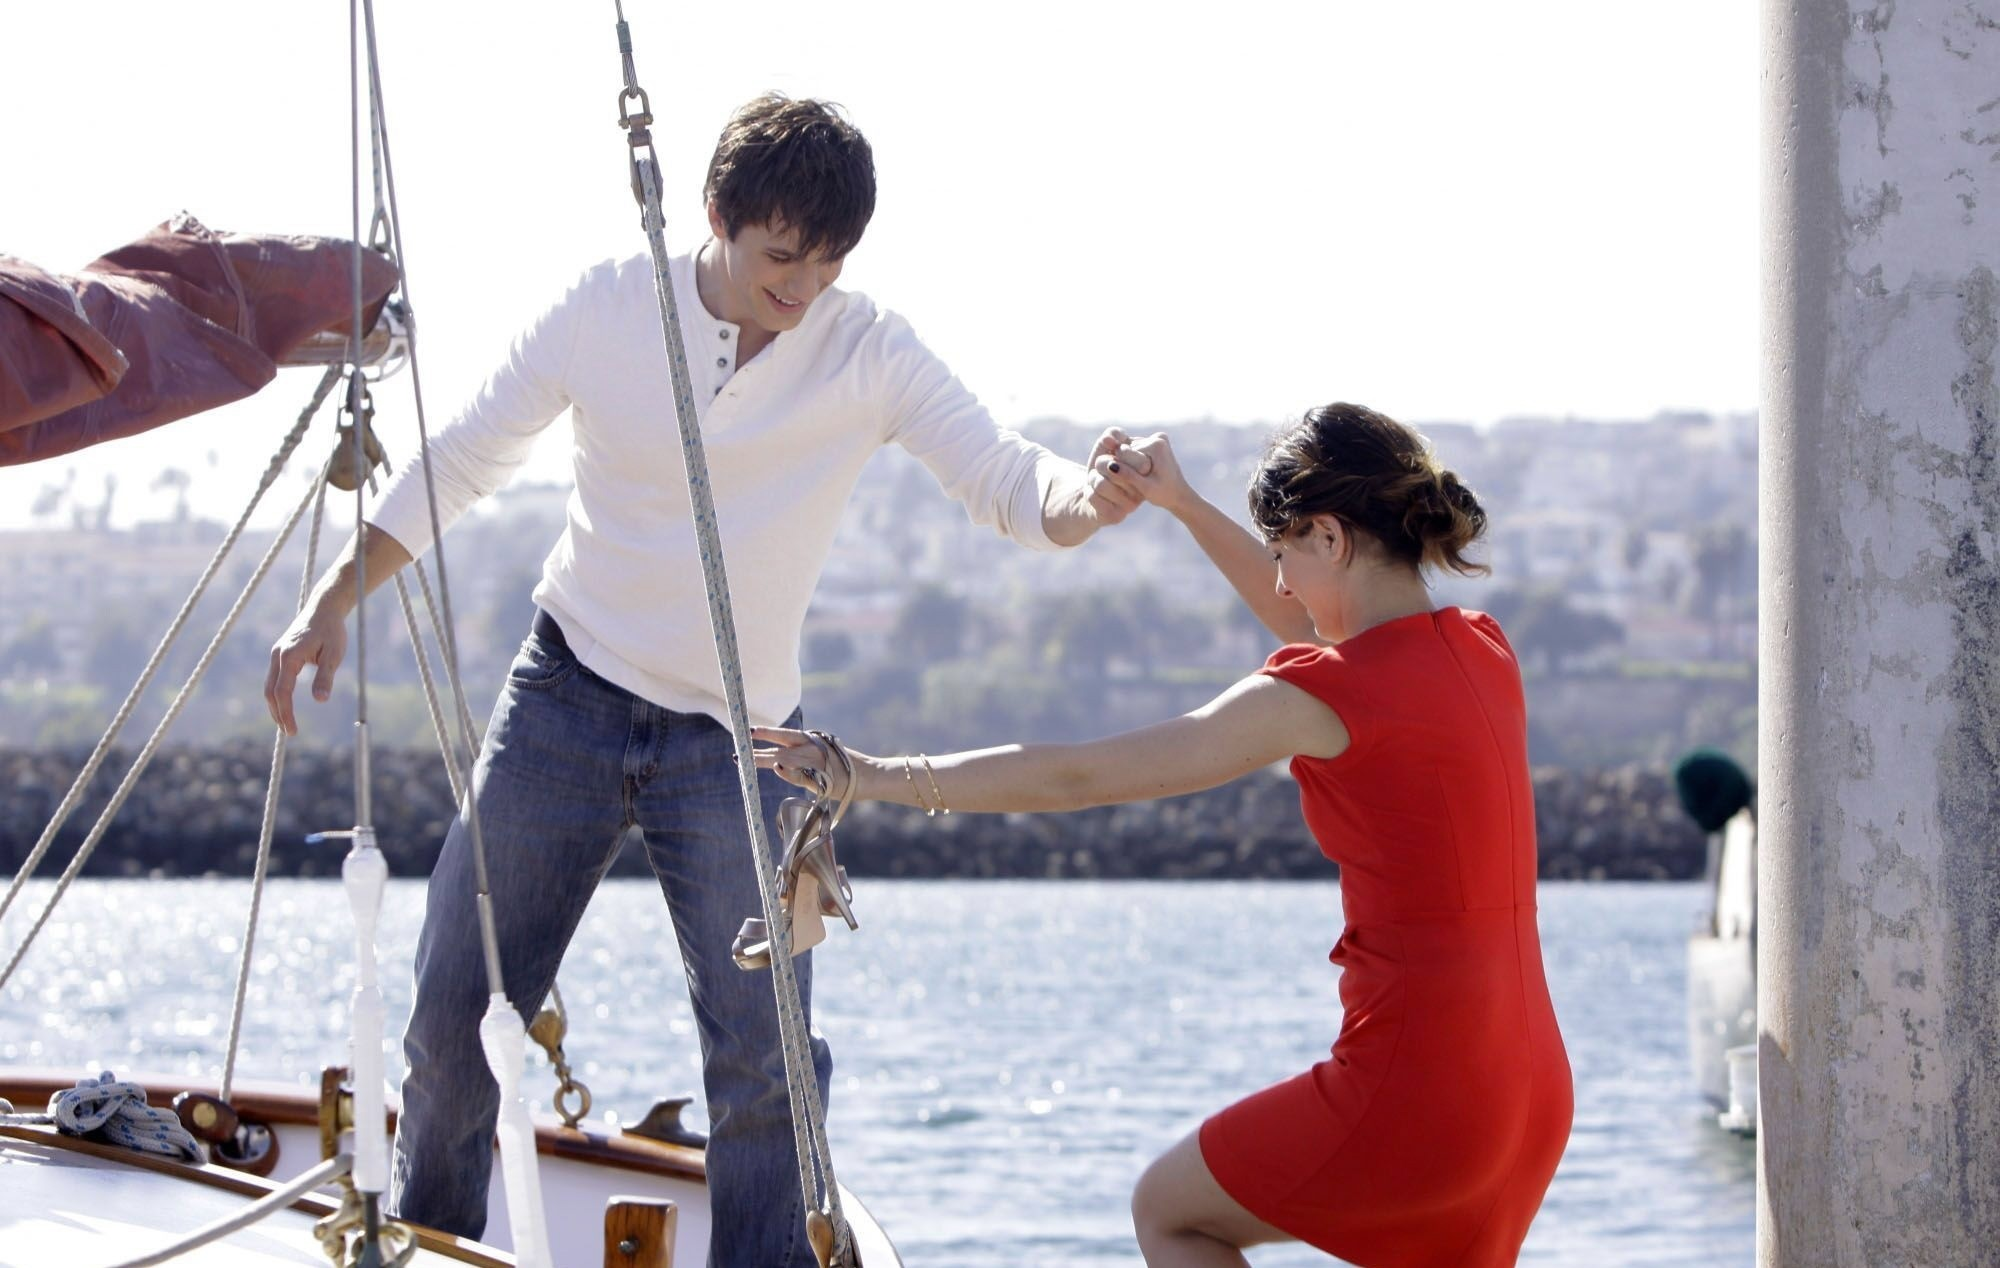 Cute guy and pretty girl on a boat